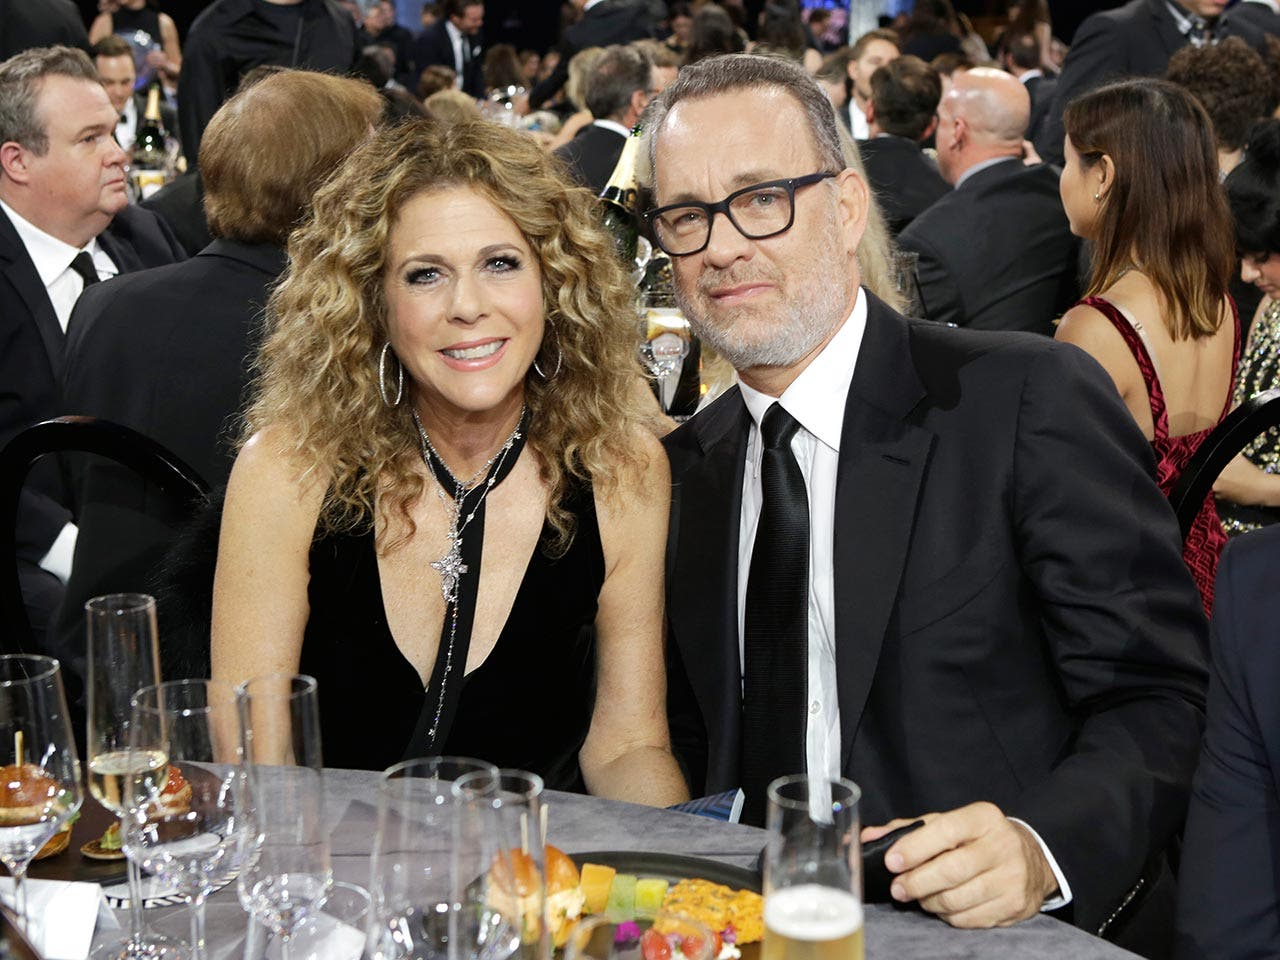 Tom Hanks and Rita Wilson | Tiffany Rose/Getty Images